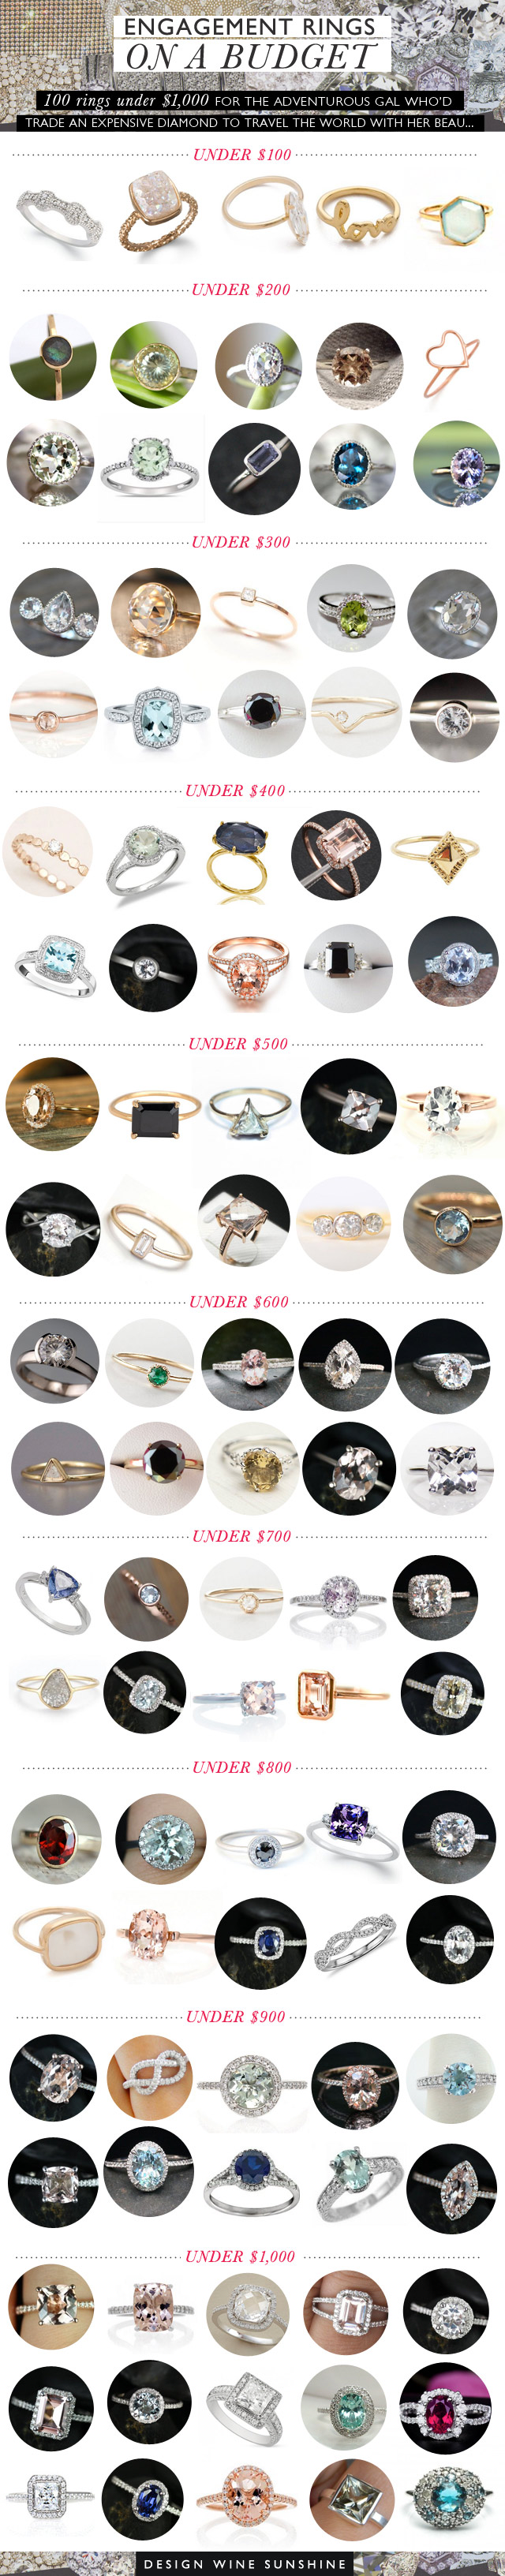 affordable-engagement-rings-on-a-budget-design-wine-sunshine